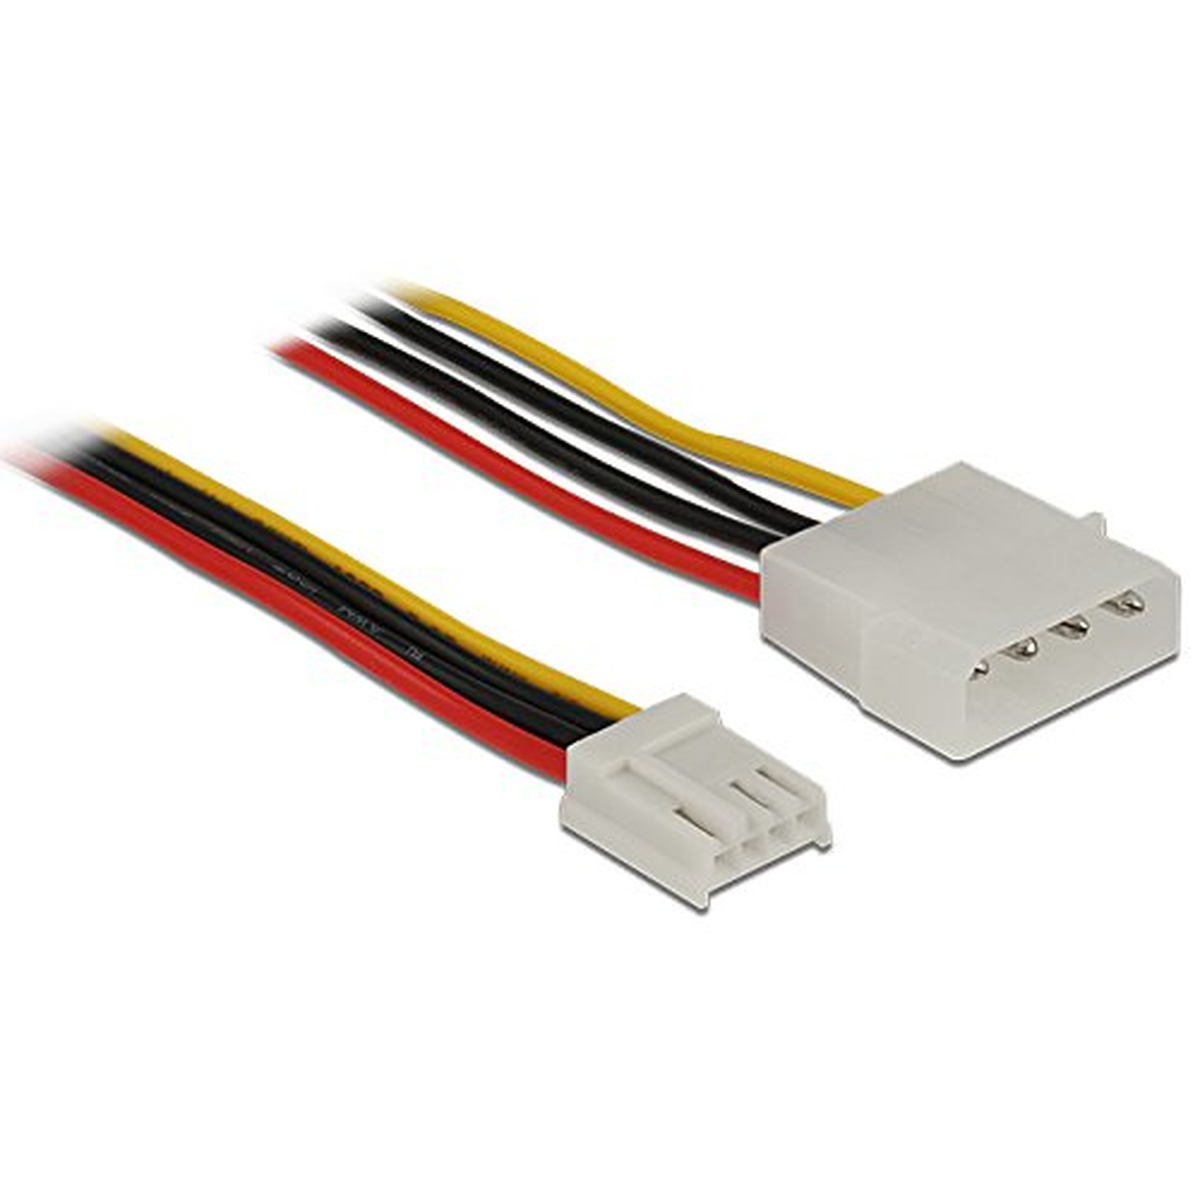 DeLOCK Kabel Power Molex 4 Pin Stecker > Floppy 4 Pin Buchse